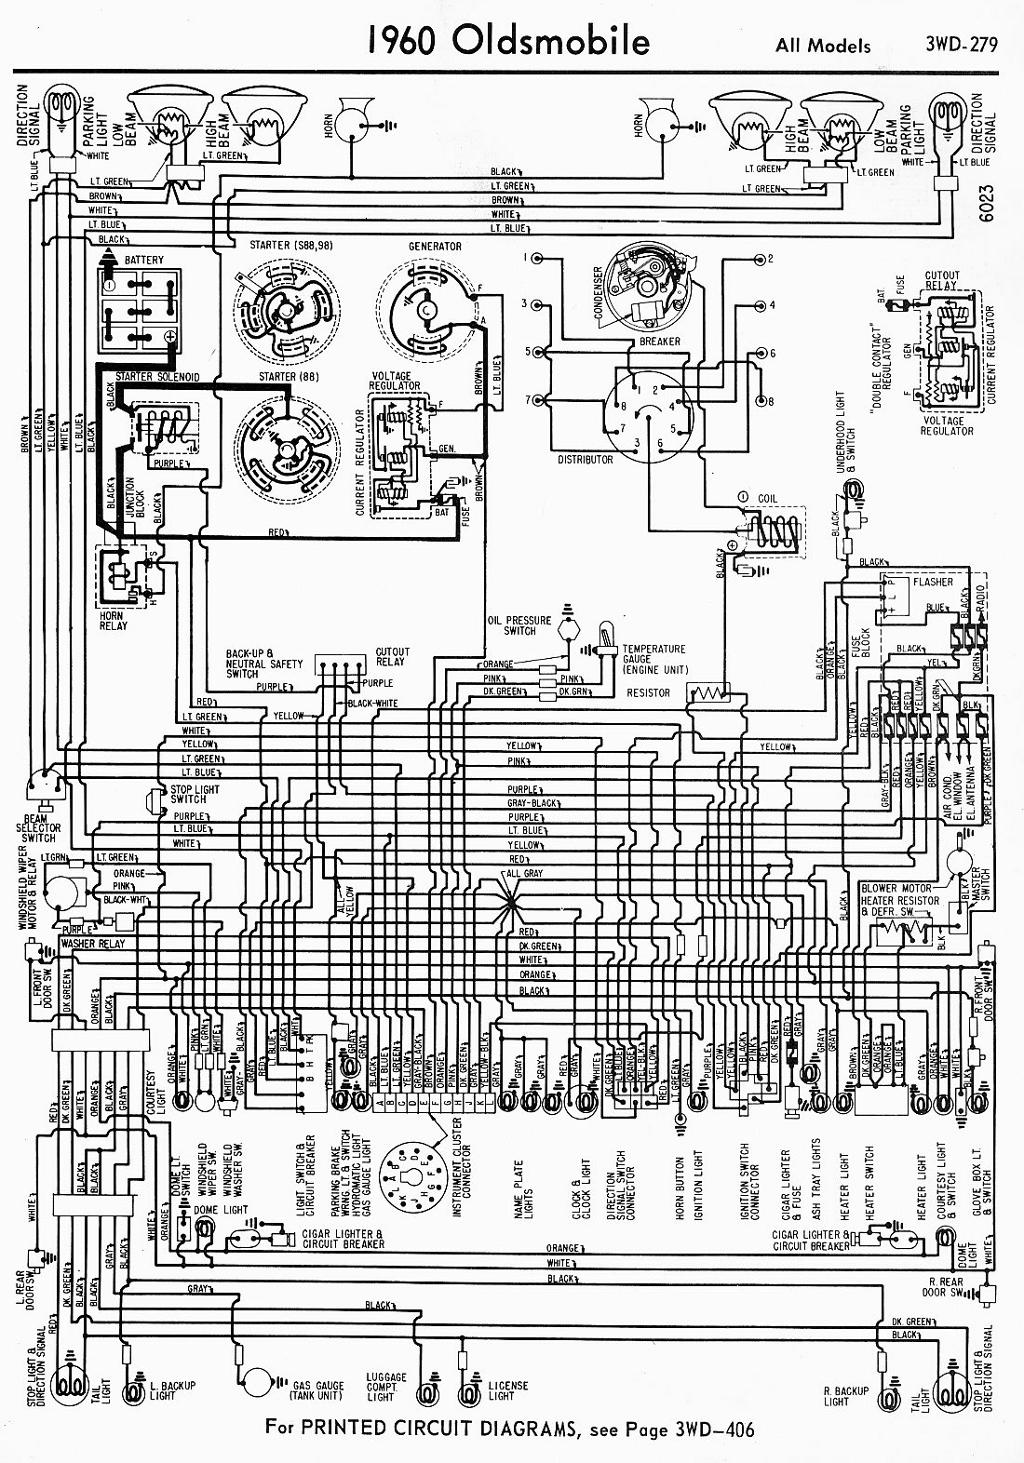 Oldsmobile - Car Manuals, Wiring Diagrams PDF & Fault Codes